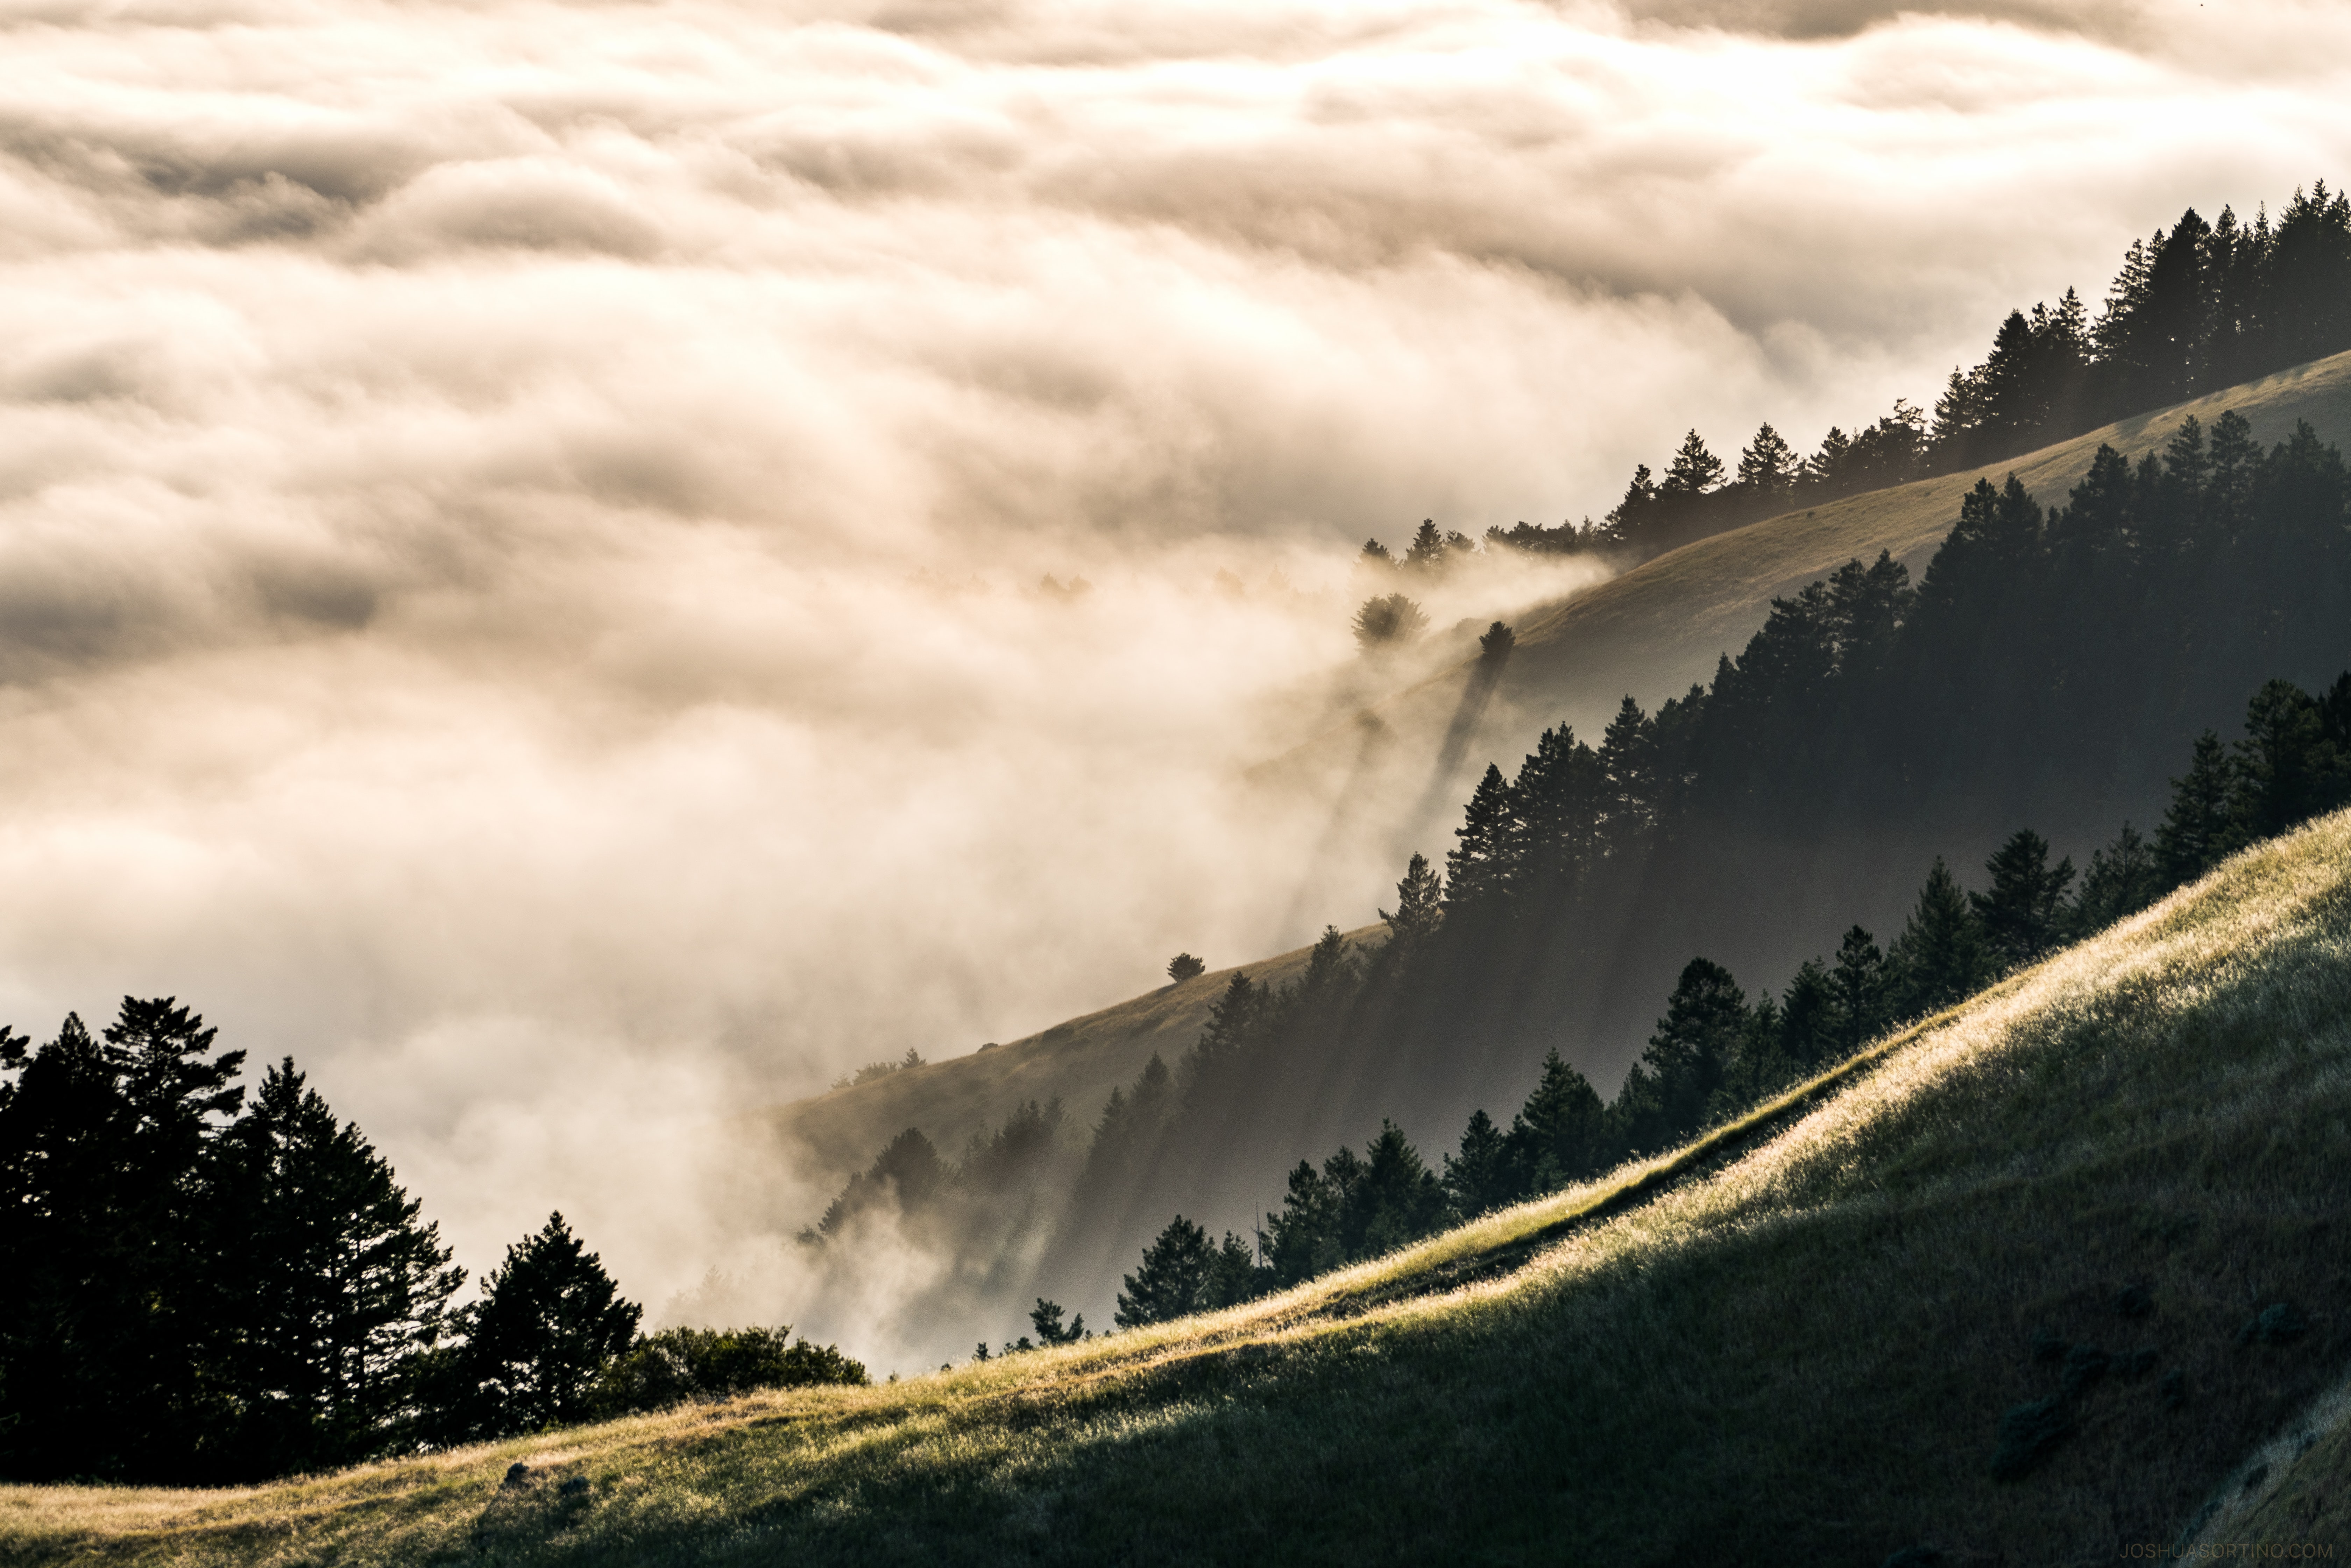 Clouds roll in over dark forest as sun rises